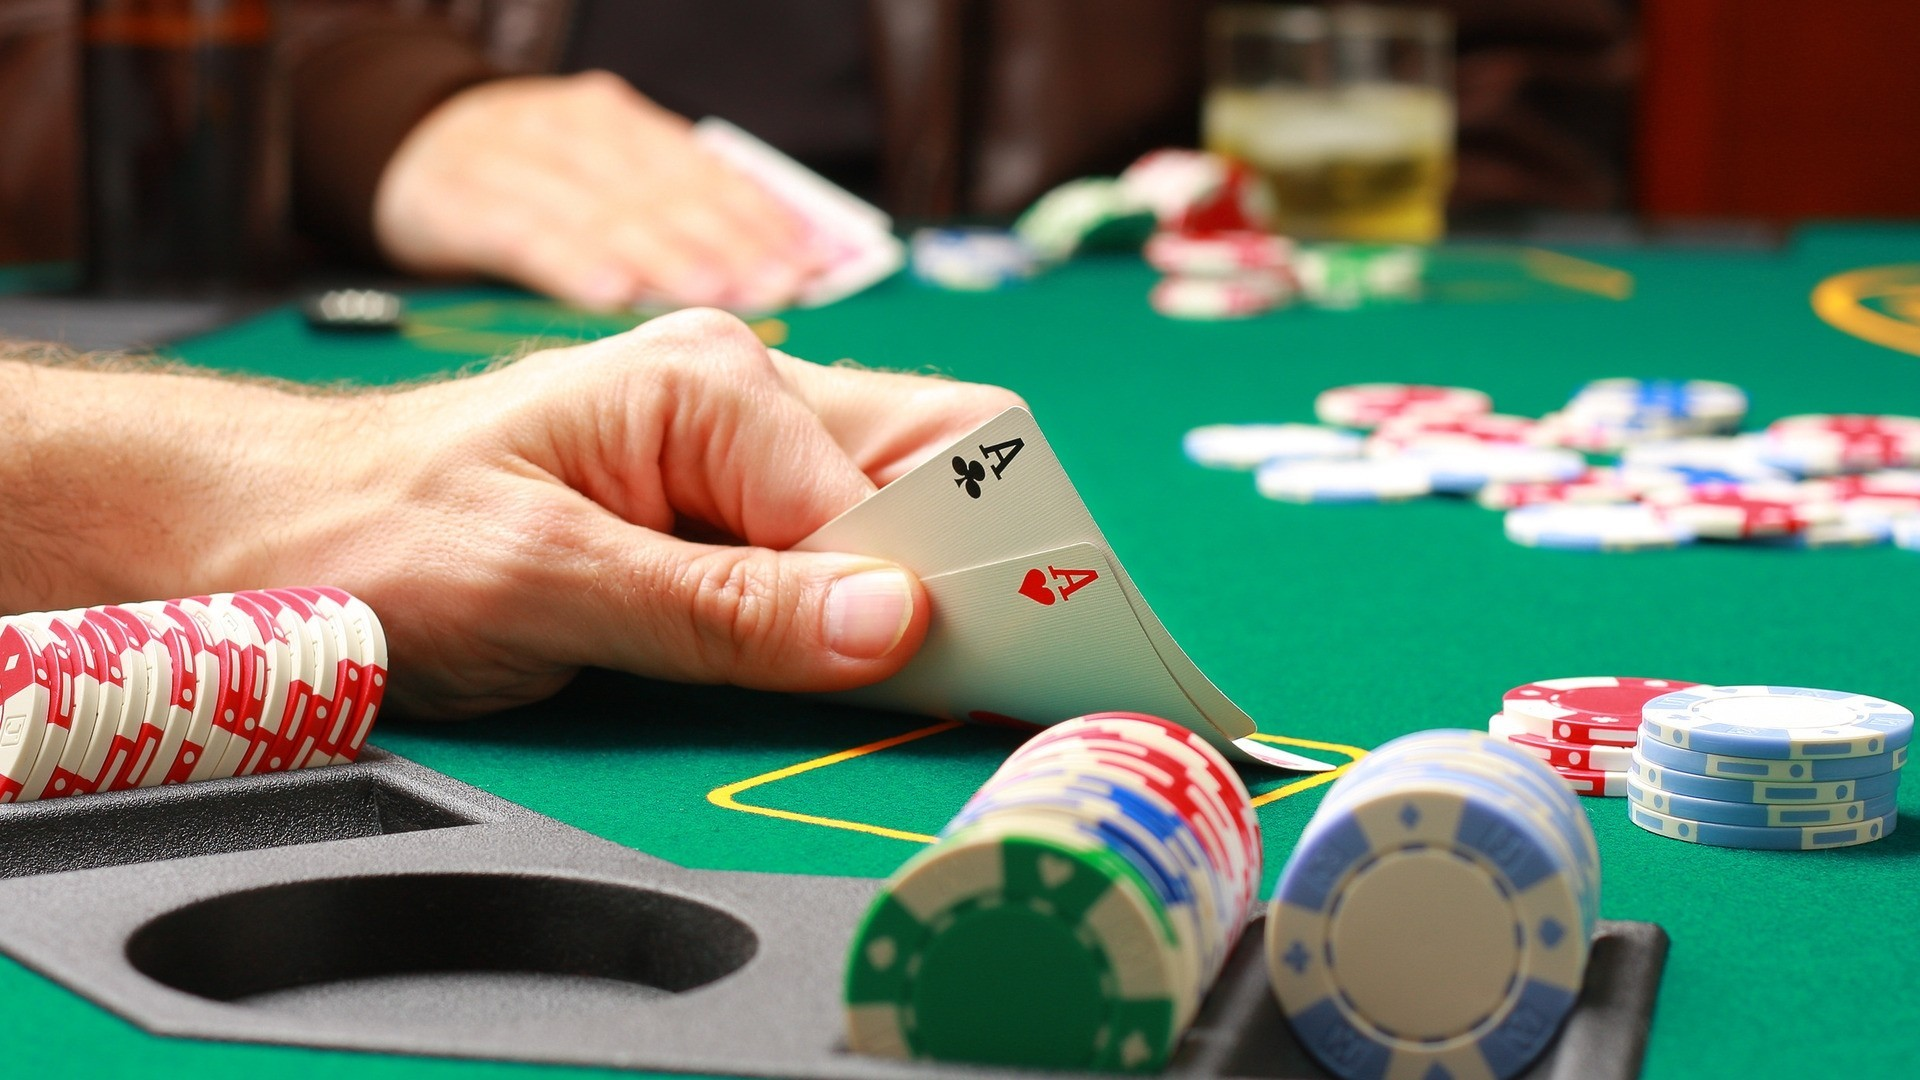 The Online Casino Game